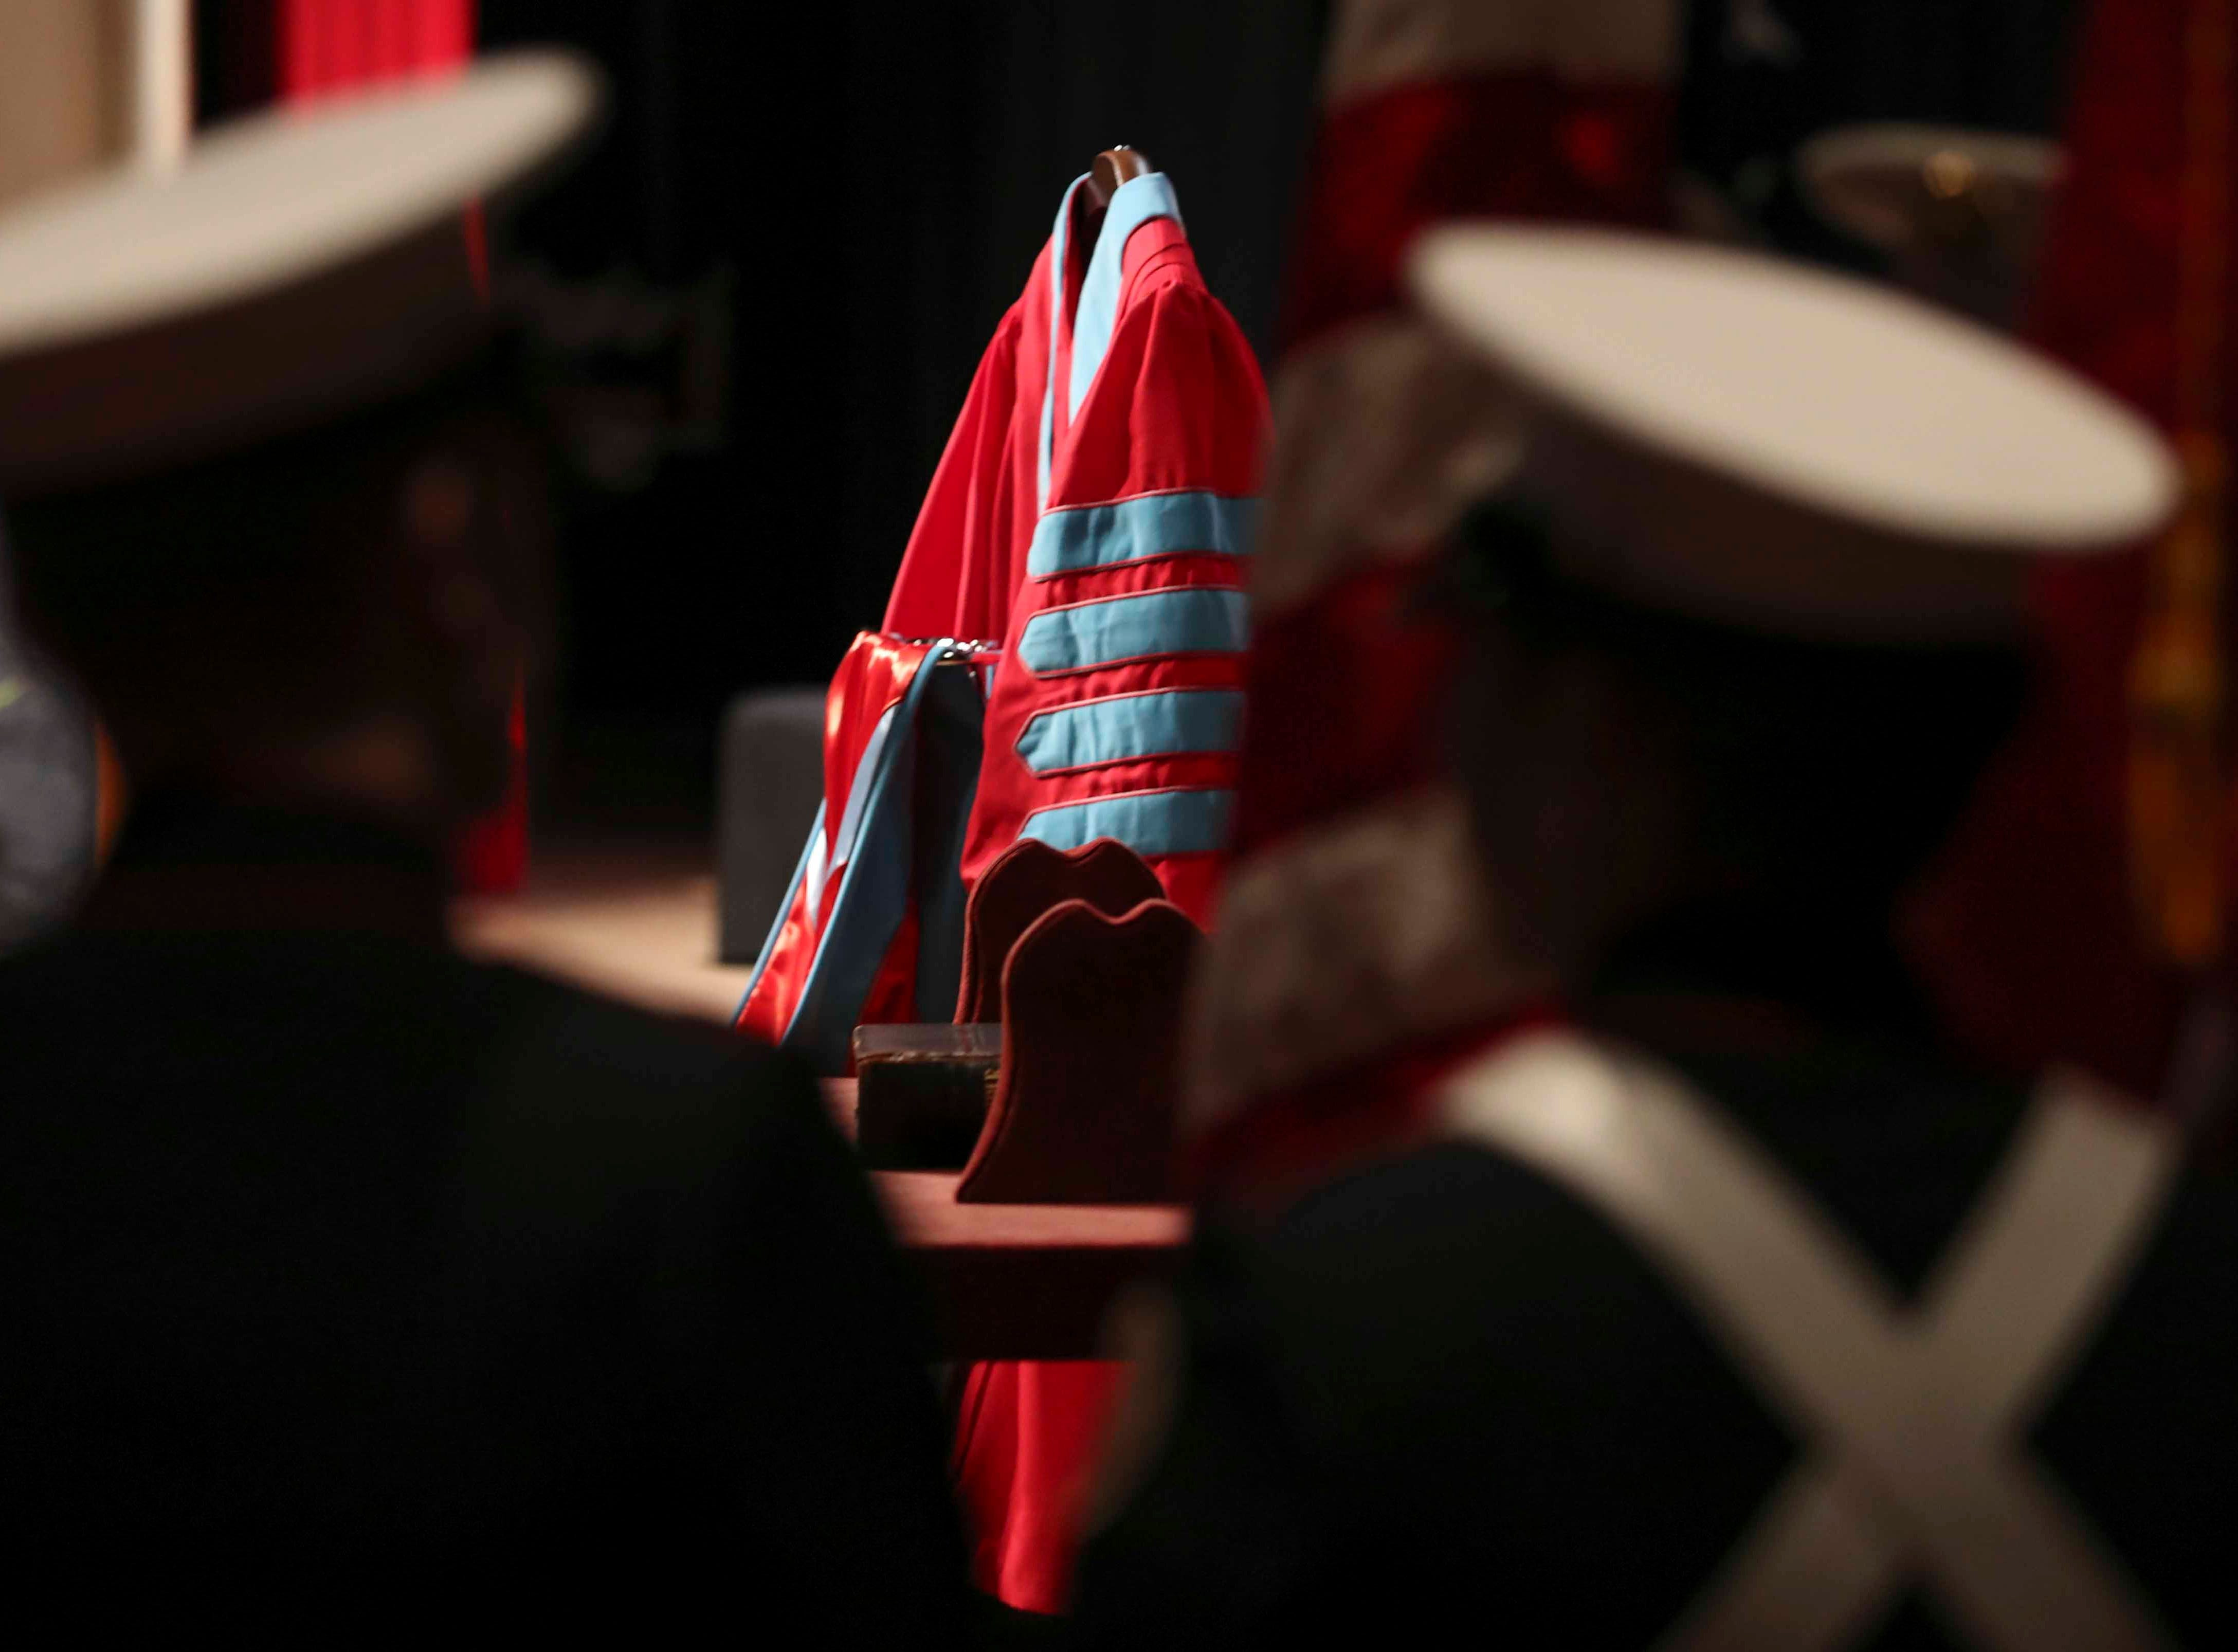 Members of the First State Military Academy color guard wait for the start of ceremonies as the academic regalia of Wilma Mishoe rests on the stage before her investiture ceremony Saturday at the Dover campus. Mishoe, a daughter of the university's 7th president, had been interim president since January before being named president in July. She is the university's 11th president and first woman president.